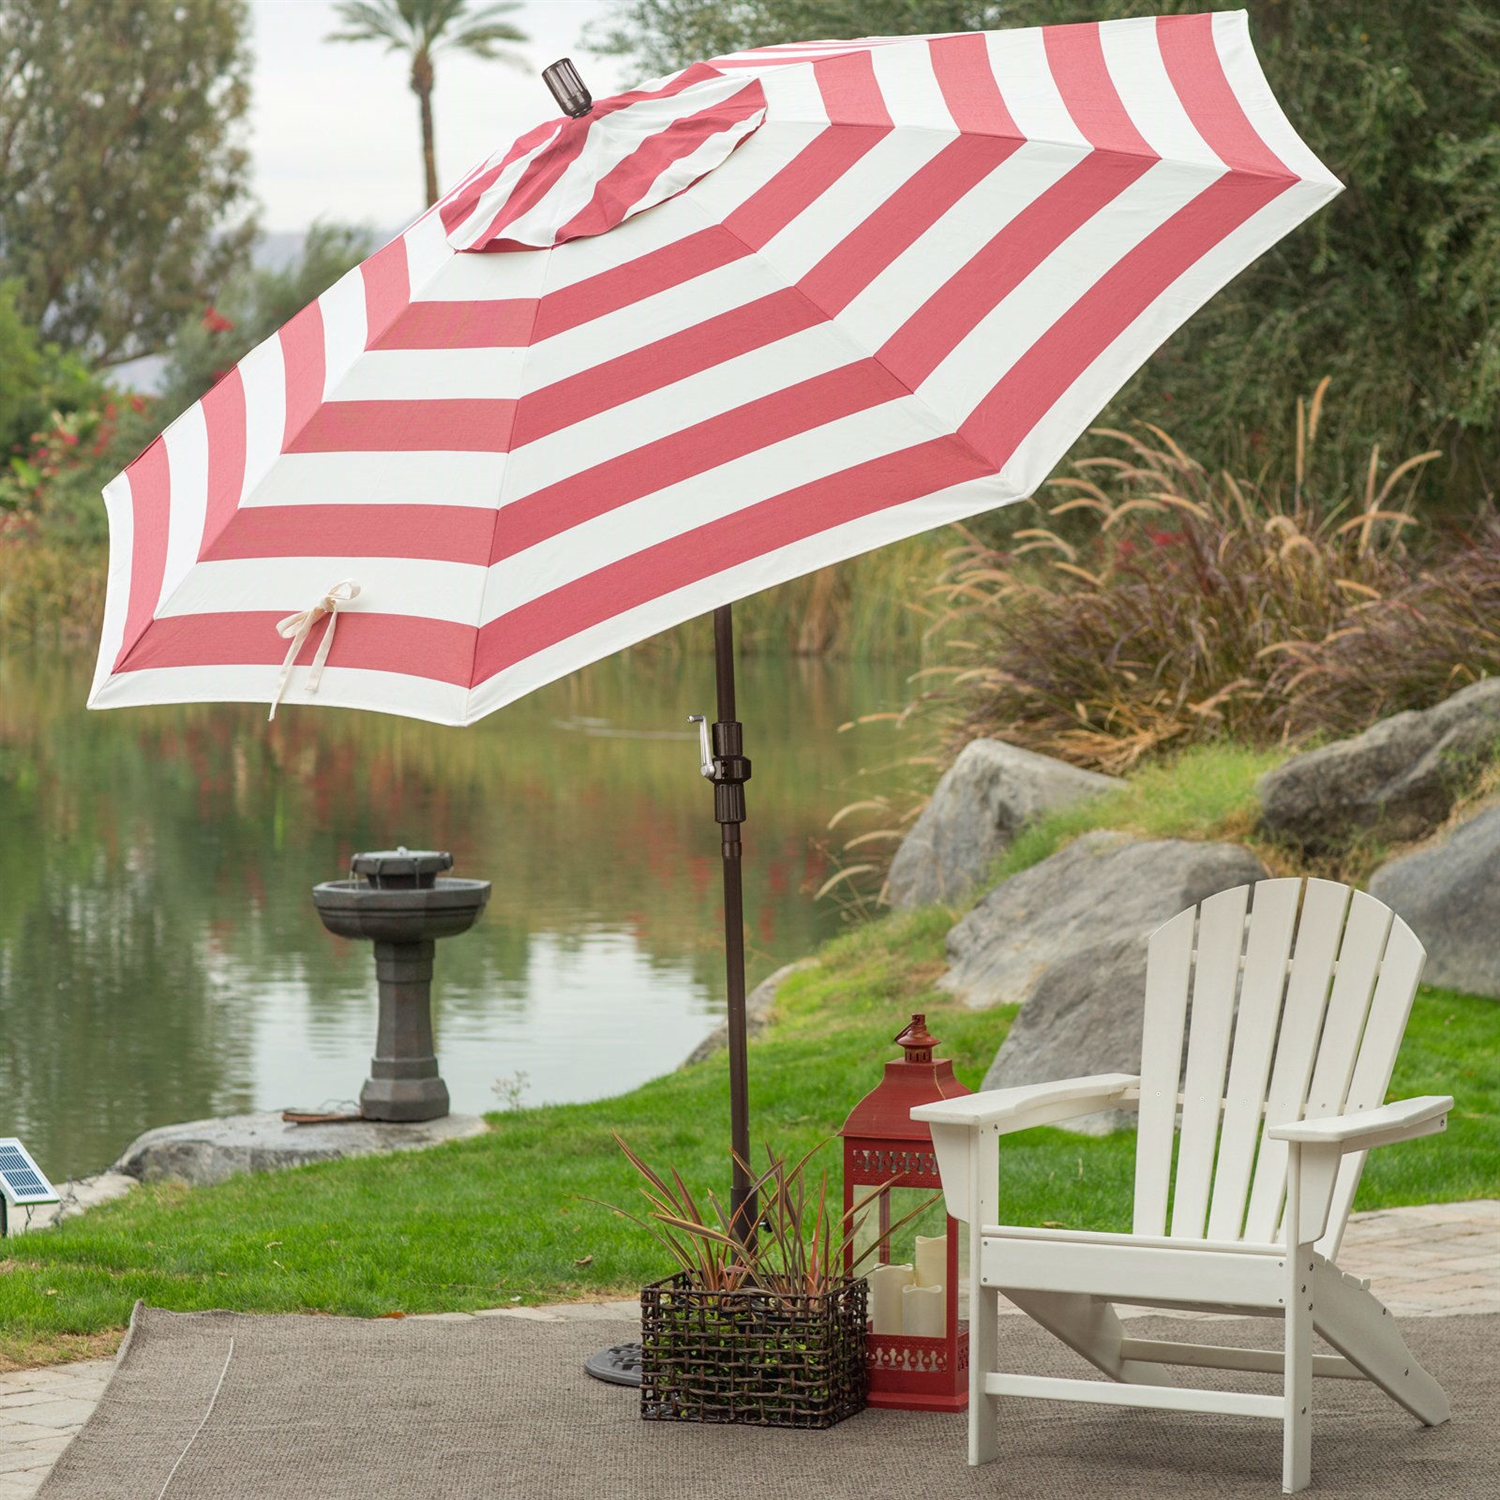 7 5 Ft Patio Umbrella In Red And White Stripe Outdoor Fabric Metal Pole Fastfurnishings